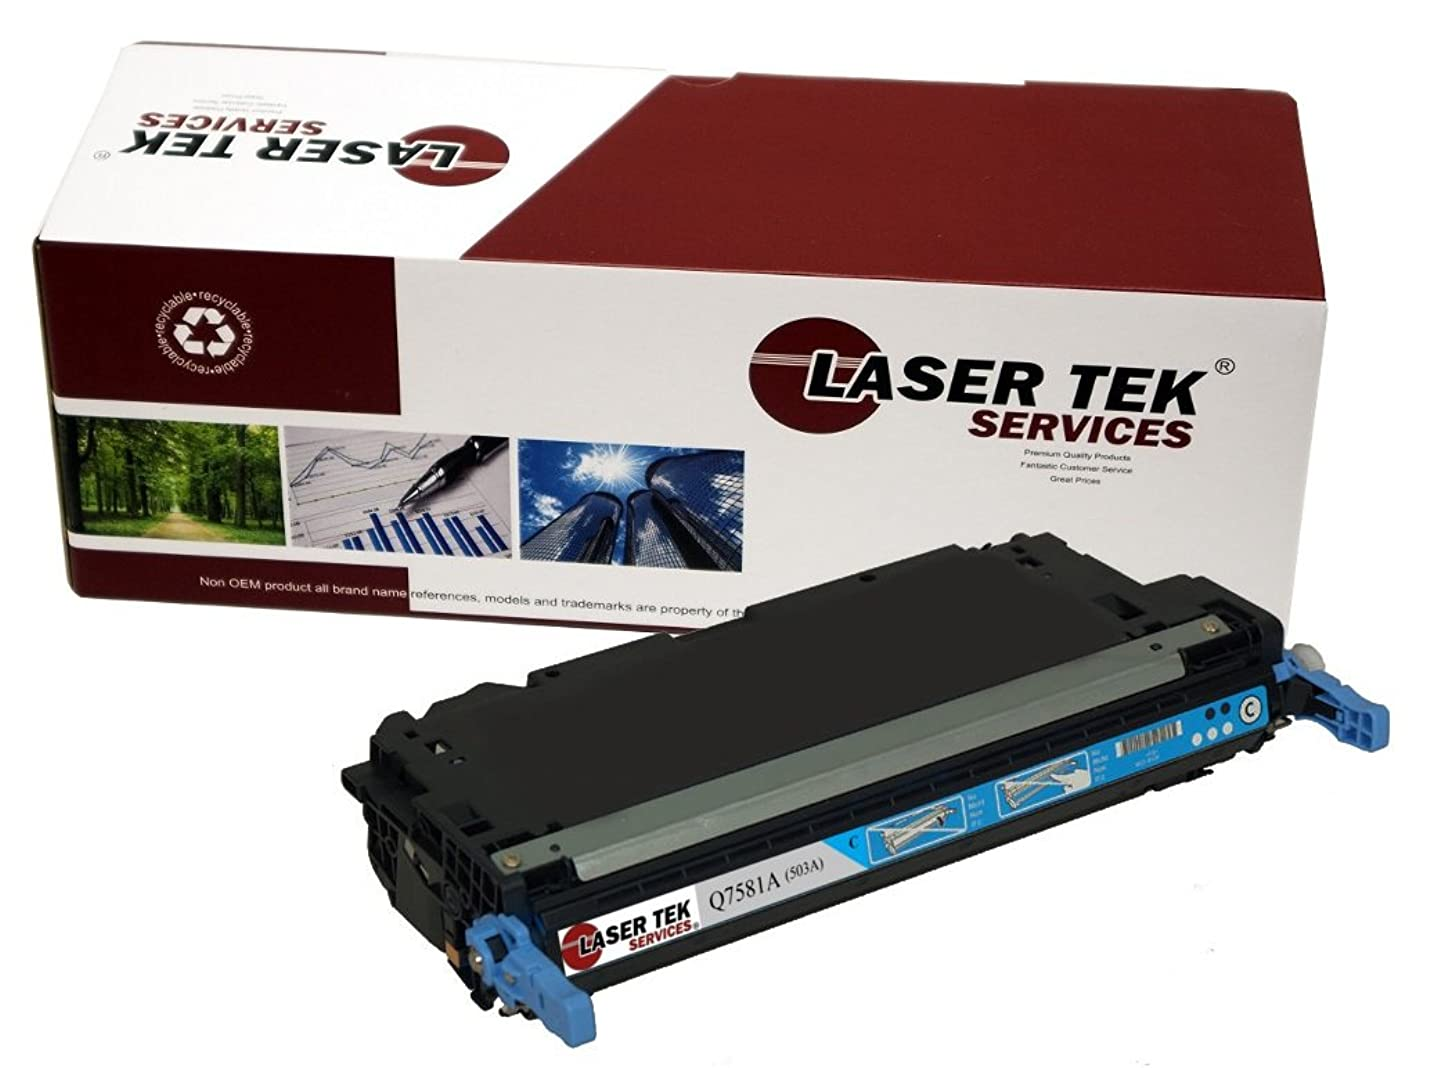 Laser Tek Services Compatible Toner Cartridge Replacement for HP 503A Q7581A (Cyan, 1-Pack)